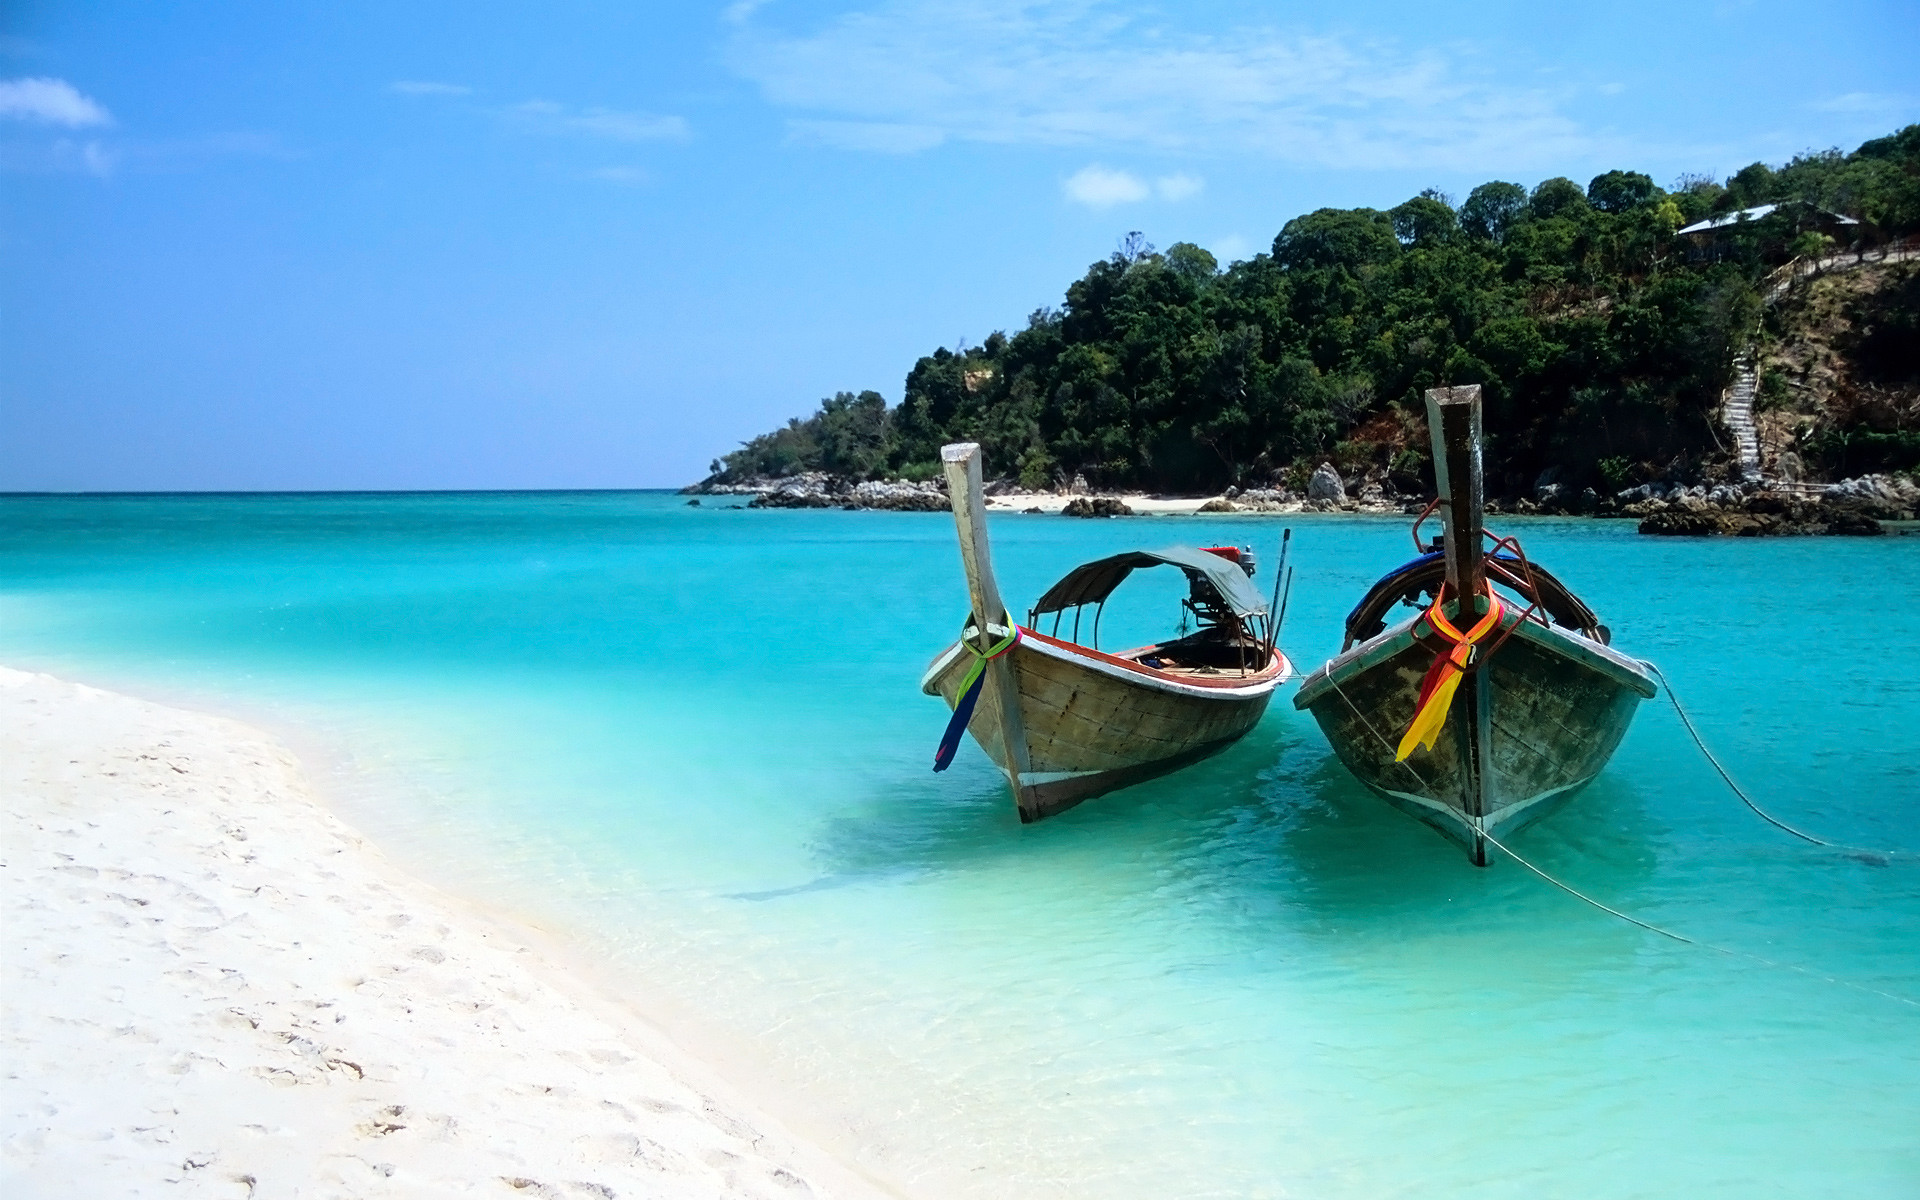 1920x1200 Thailand Beach Wallpaper 1080p As Wallpaper HD